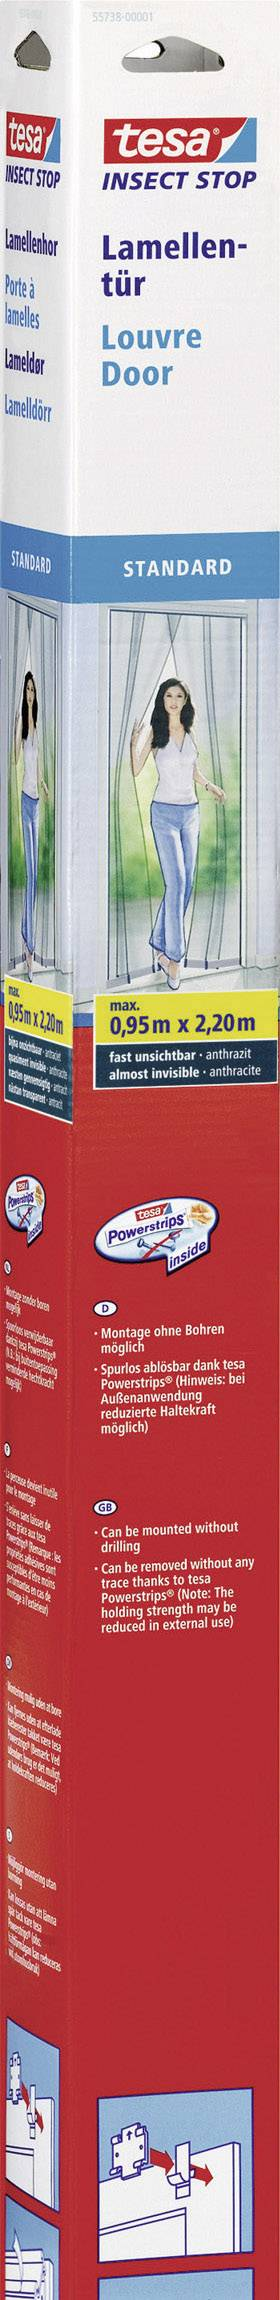 tesa Insect Stop Standard 5519